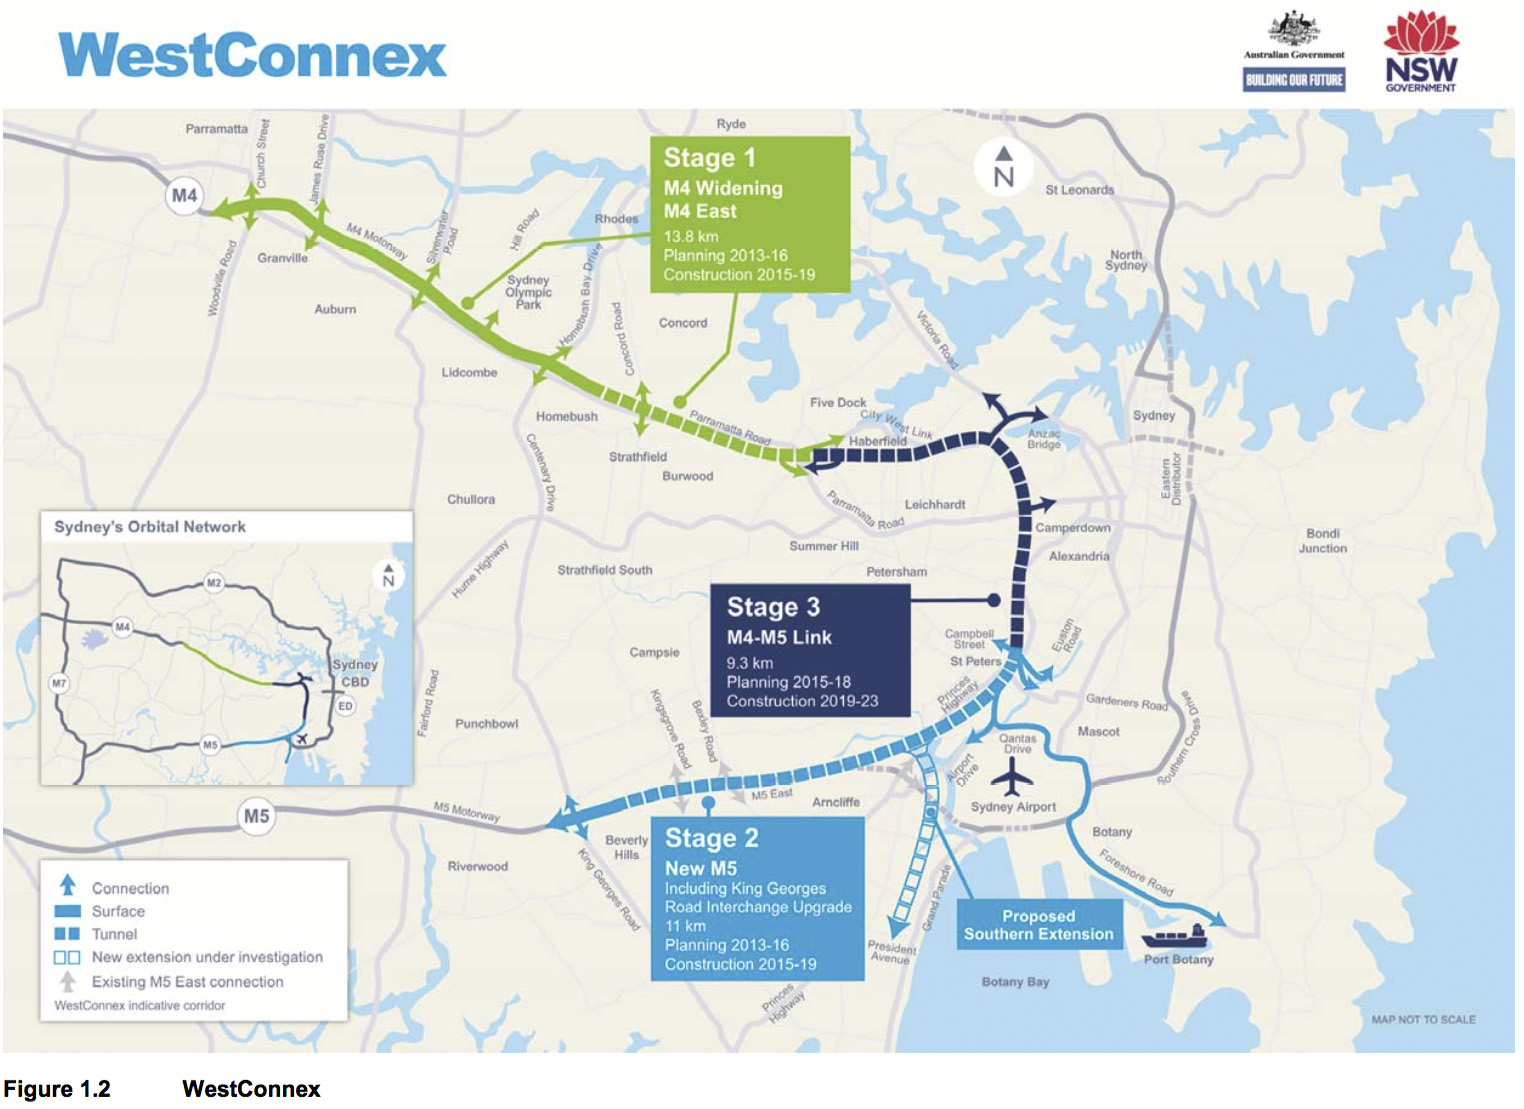 Map of WestConnex route through Sydney